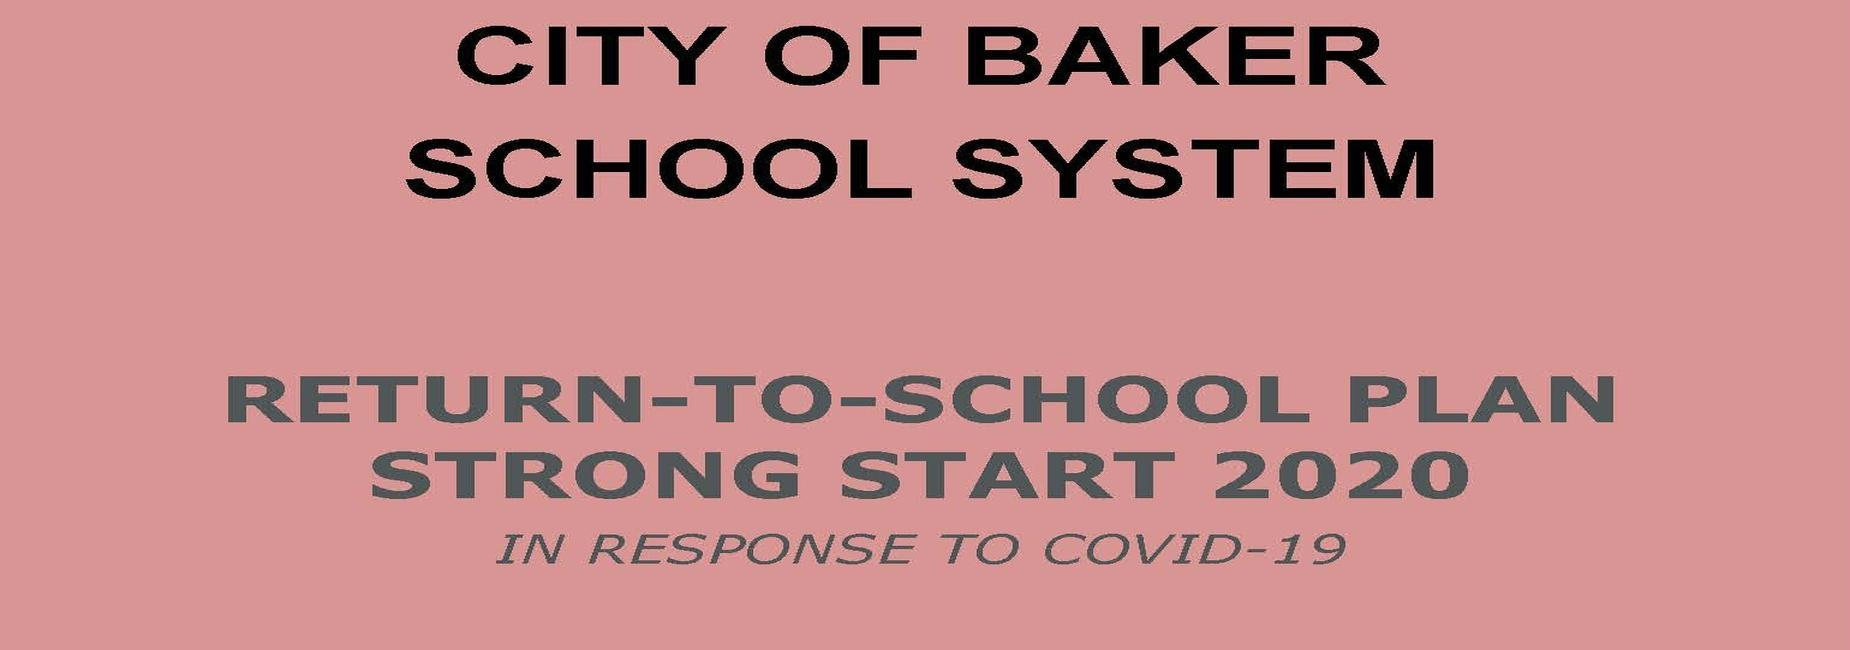 a photo banner announcing the City of Baker School System Re-open plan for 2020. The link to the plan is clickable in the photo